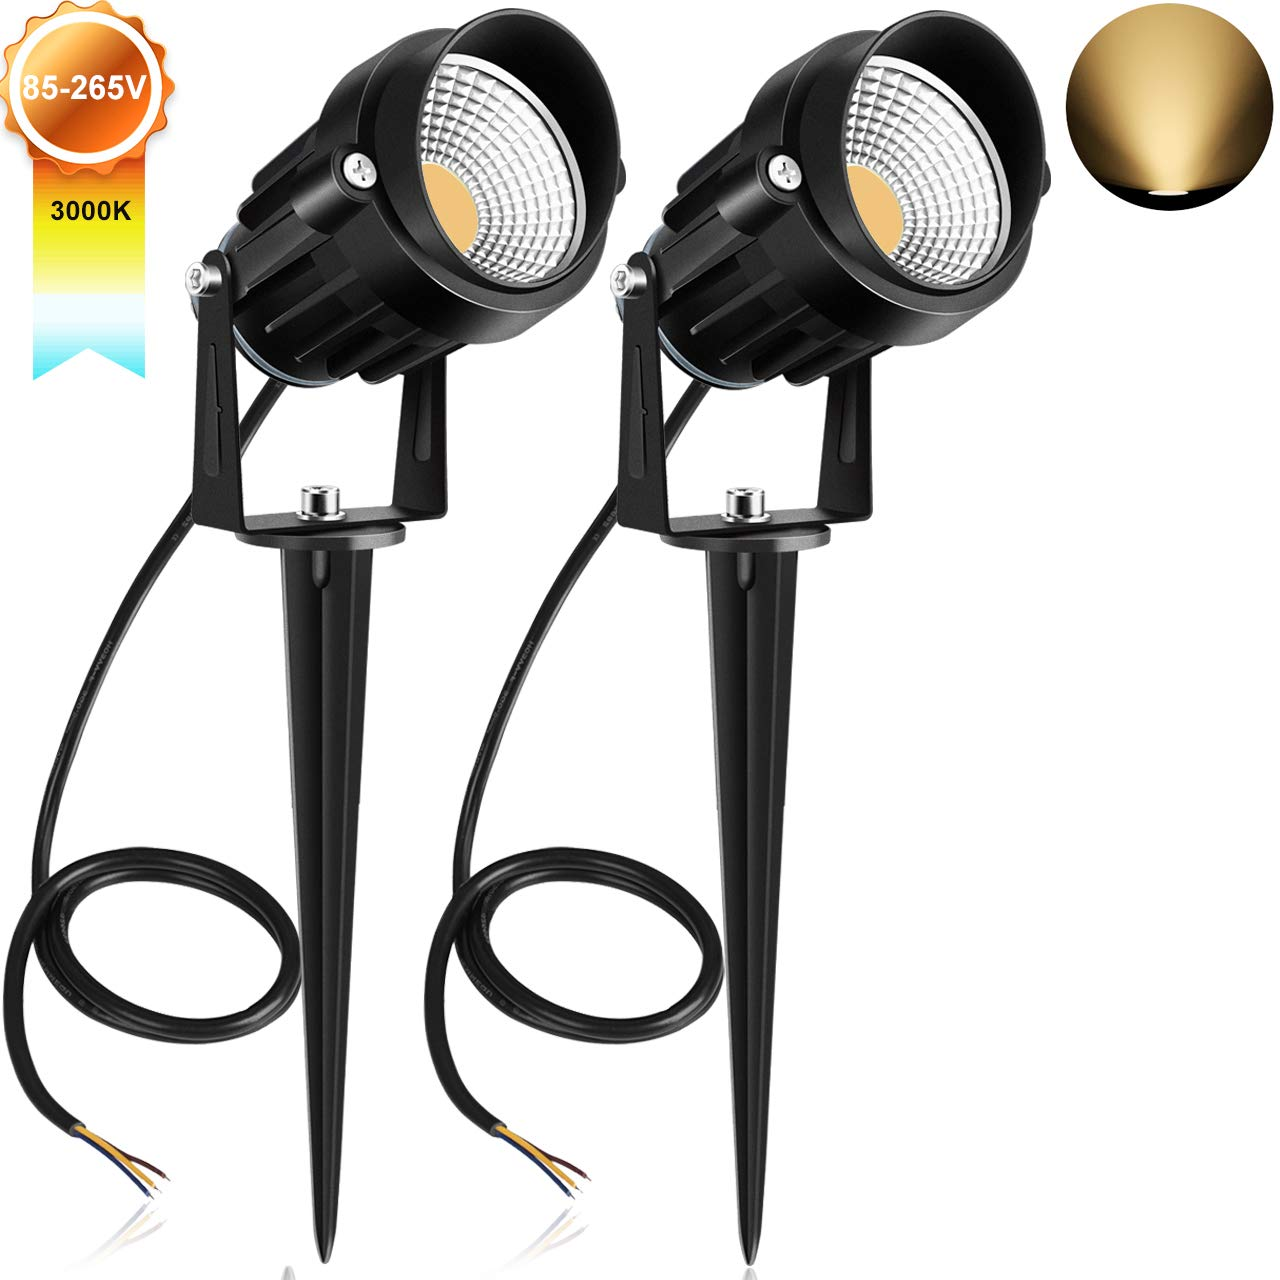 CLY 7W Led Spotlight, 4 LED Landscape Lights 800 Lumen Super Bright IP66 Waterproof Wall Lights Security Lighting for Garden, Lawn, Patio and Yard